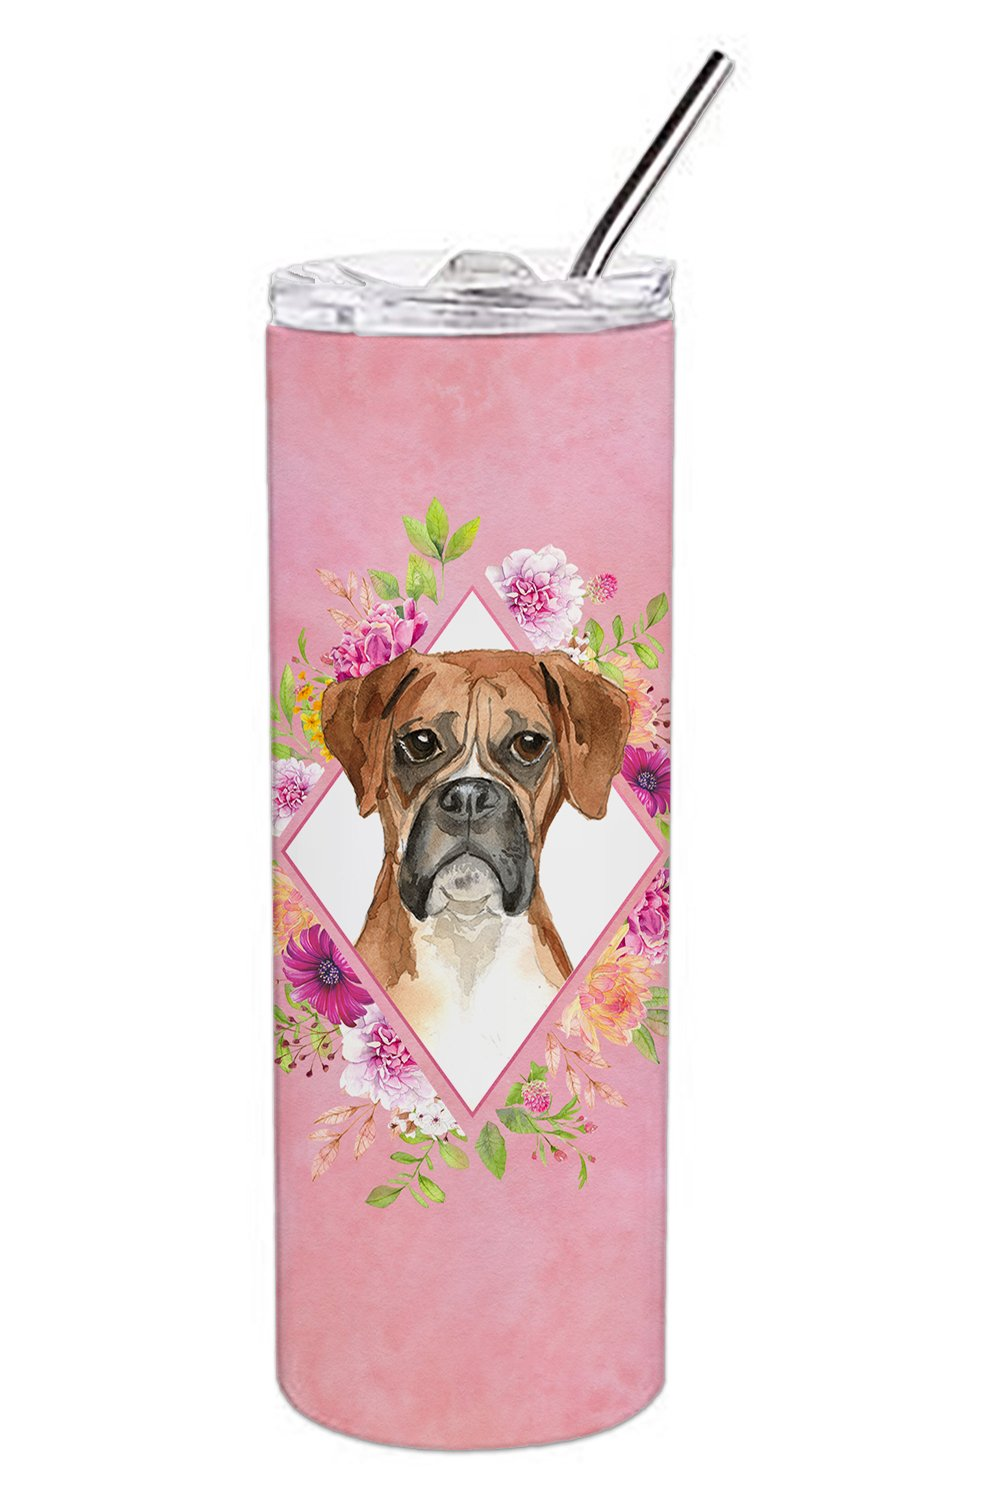 Boxer Pink Flowers Double Walled Stainless Steel 20 oz Skinny Tumbler CK4255TBL20 by Caroline's Treasures